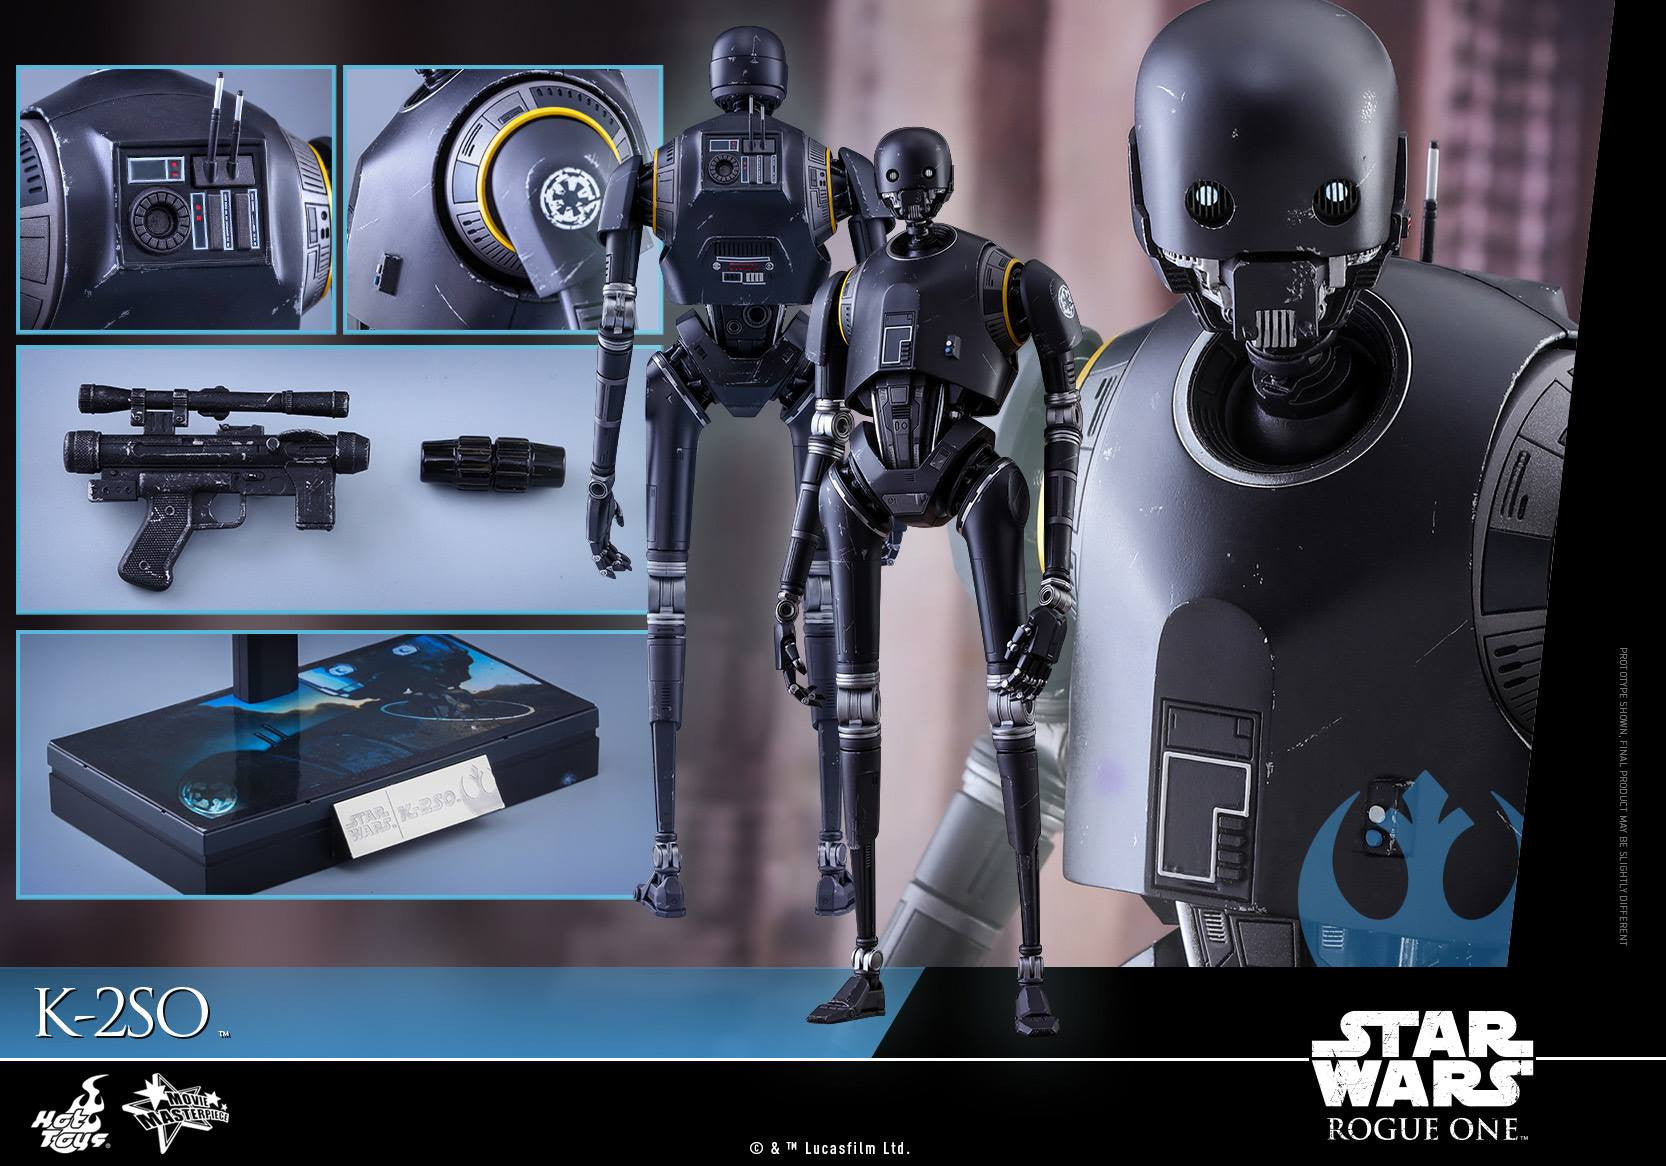 Hot Toys - MMS406 - Rogue One: A Star Wars Story - K-2SO - Marvelous Toys - 18